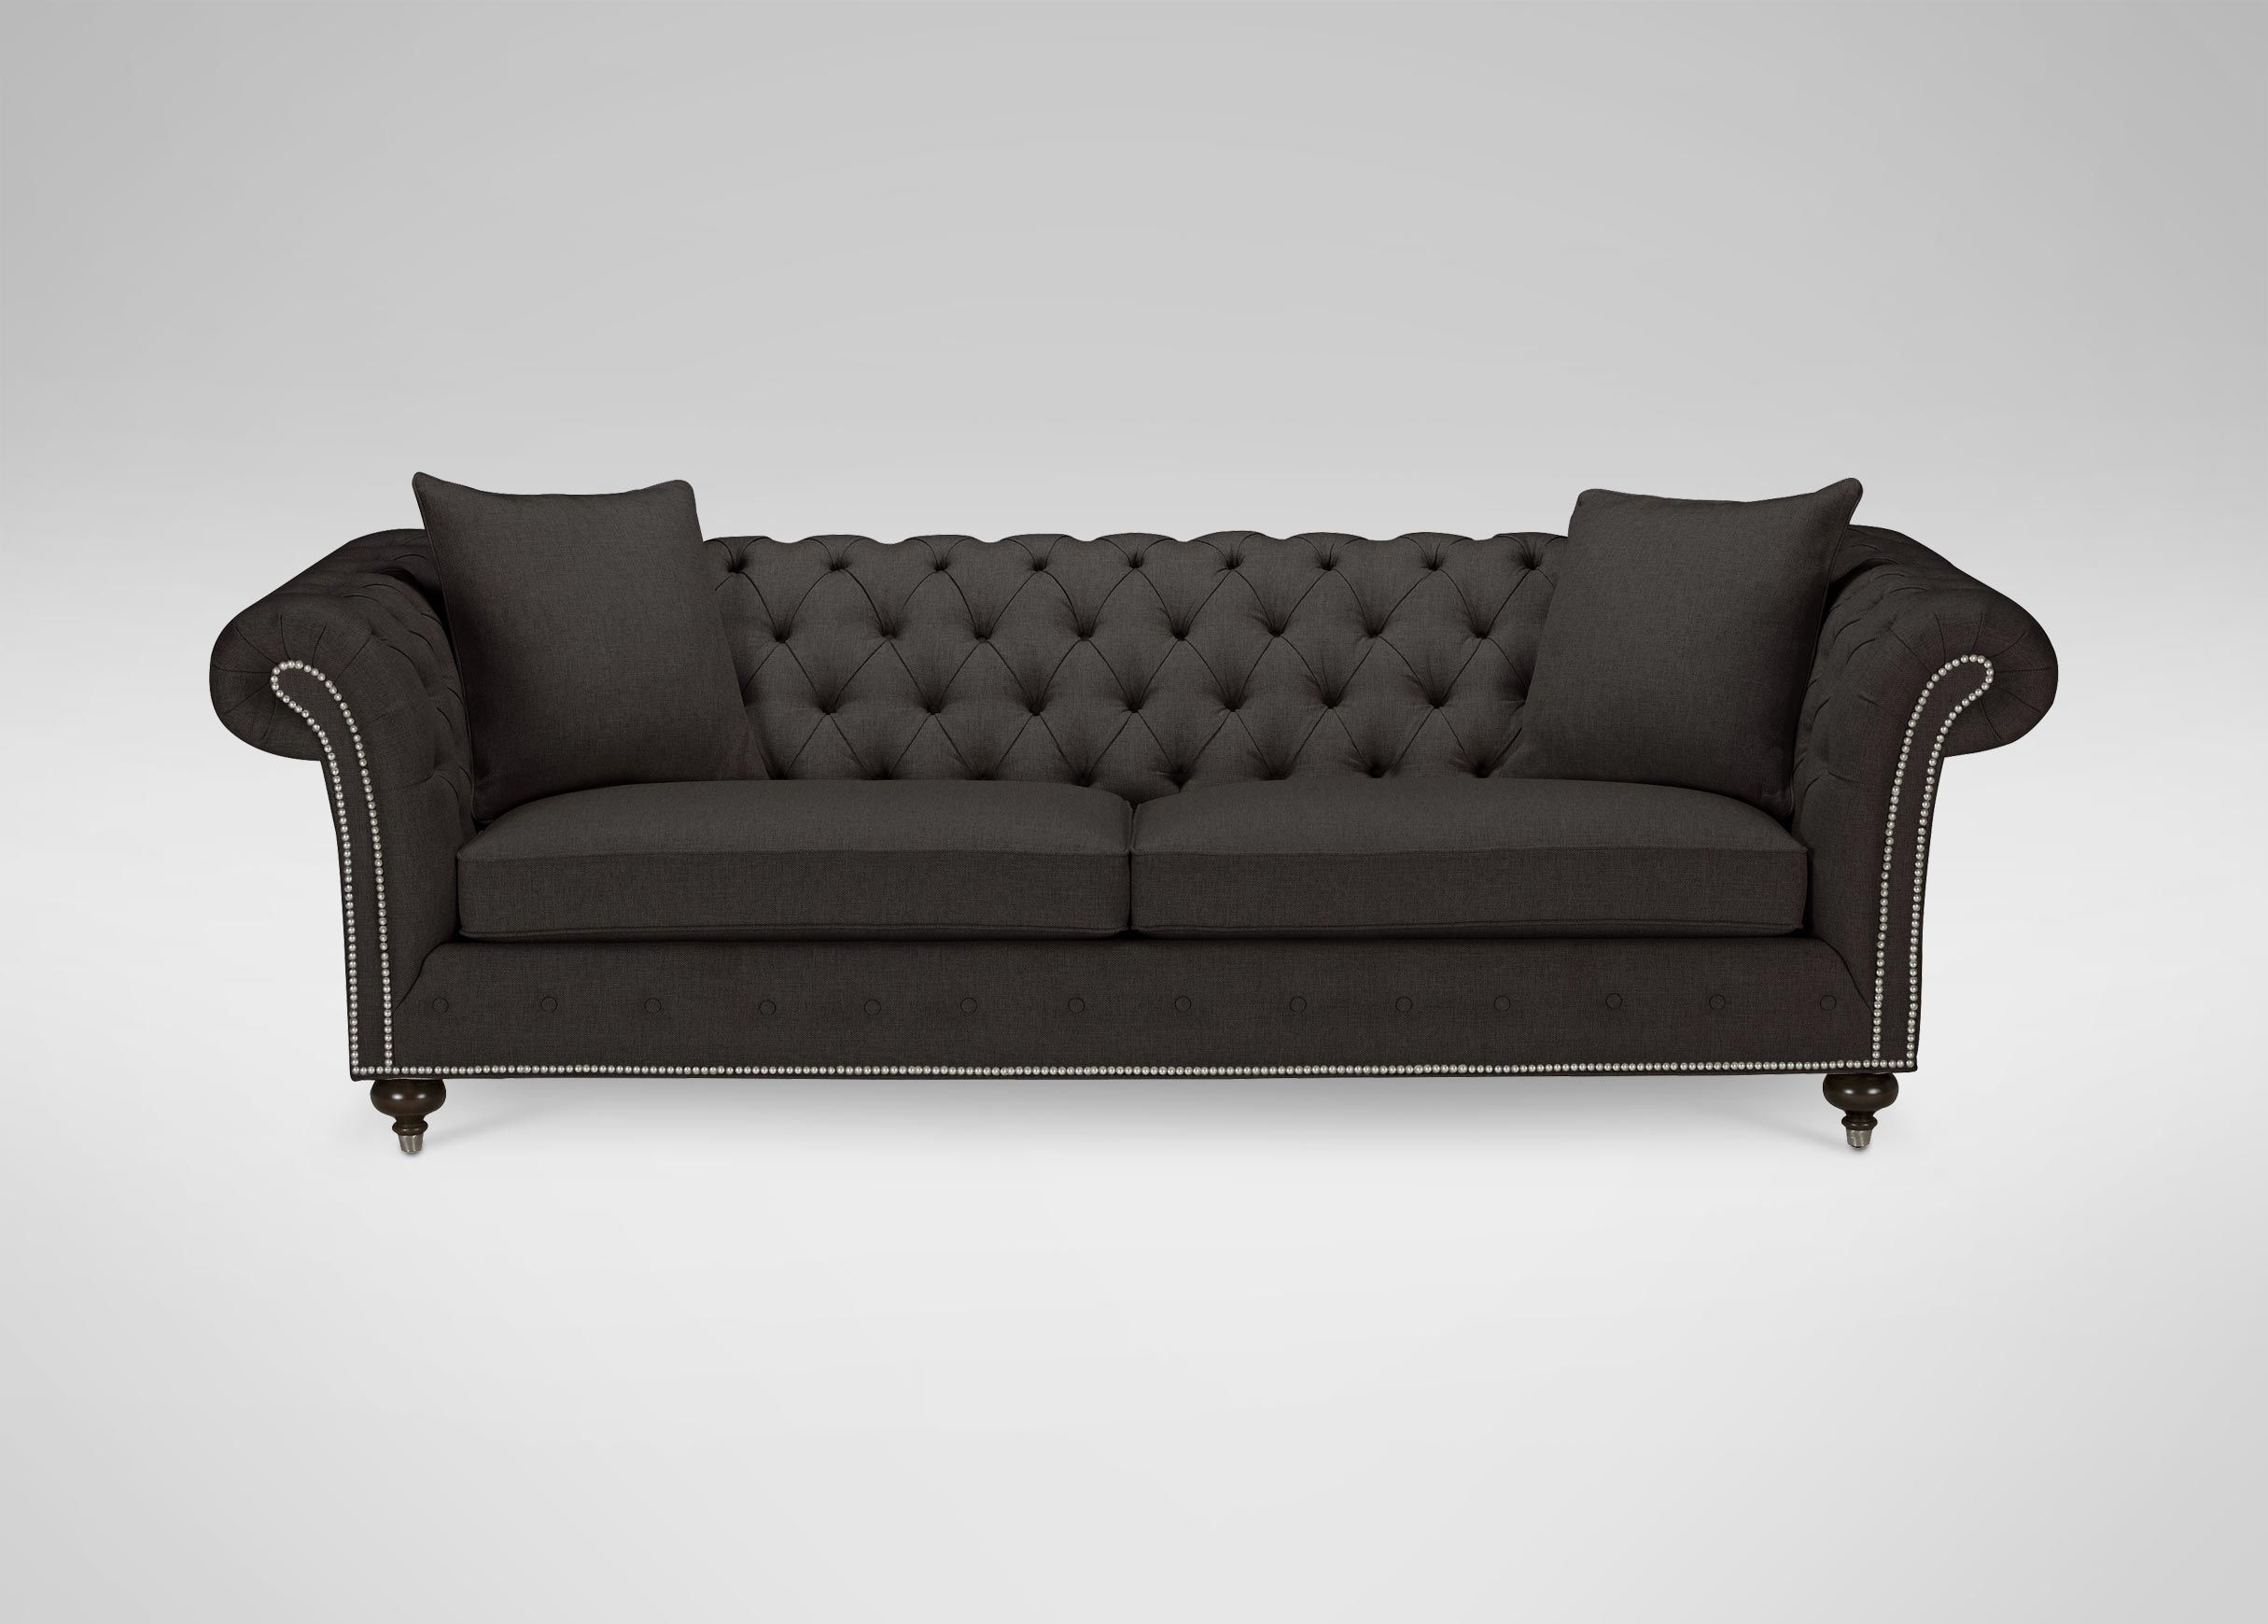 Sectional Sofa HomeVance Townsend Button Tufted Sofa